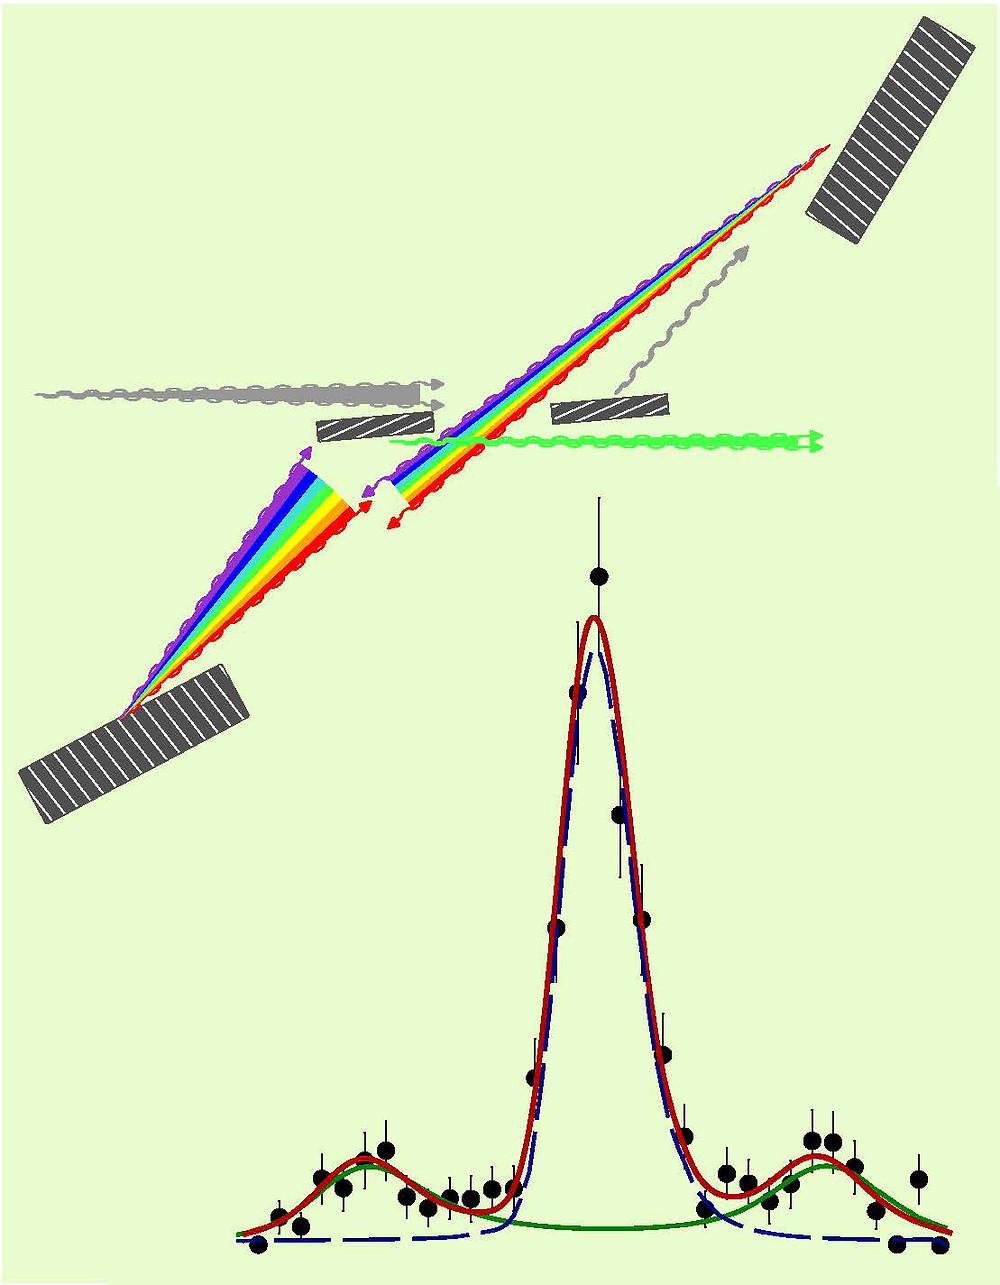 Ultra-high-resolution dispersive optics of the new inelastic x-ray scattering (IXS) spectrometer (top) and IXS spectrum of liquid glycerol measured with this spectrometer (bottom). In the dispersive optics of the IXS spectrometer, an incoming beam of x-rays (double gray line) strikes a collimator crystal, which sends a virtually parallel beam (single gray line) toward a dispersion element (top right). That in turn spreads the beam into a rainbow and sends it to a second dispersion element (bottom left), which spreads it further and sends it to a wavelength selector, which passes only photons traveling within a narrow range of angles and wavelengths (green line). When measuring the IXS spectrum of a sample of liquid glycerol, the system records exceptionally narrow spectral lines (solid circles).